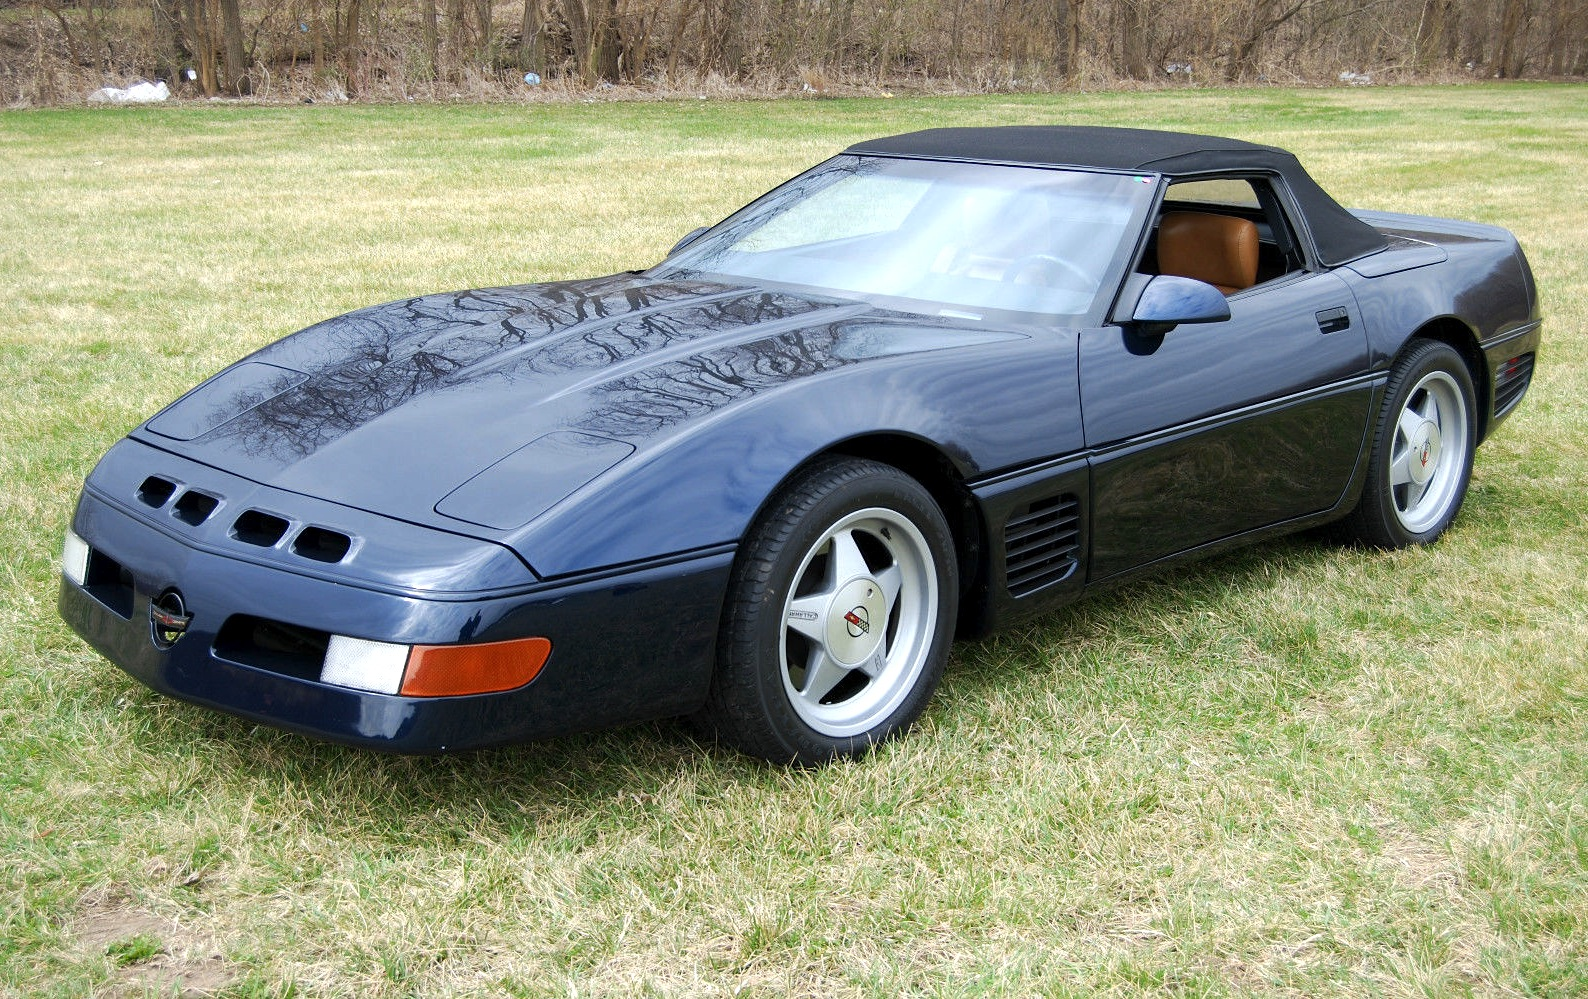 Awesome Ebay Finds 1989 Callaway Corvette Convertible